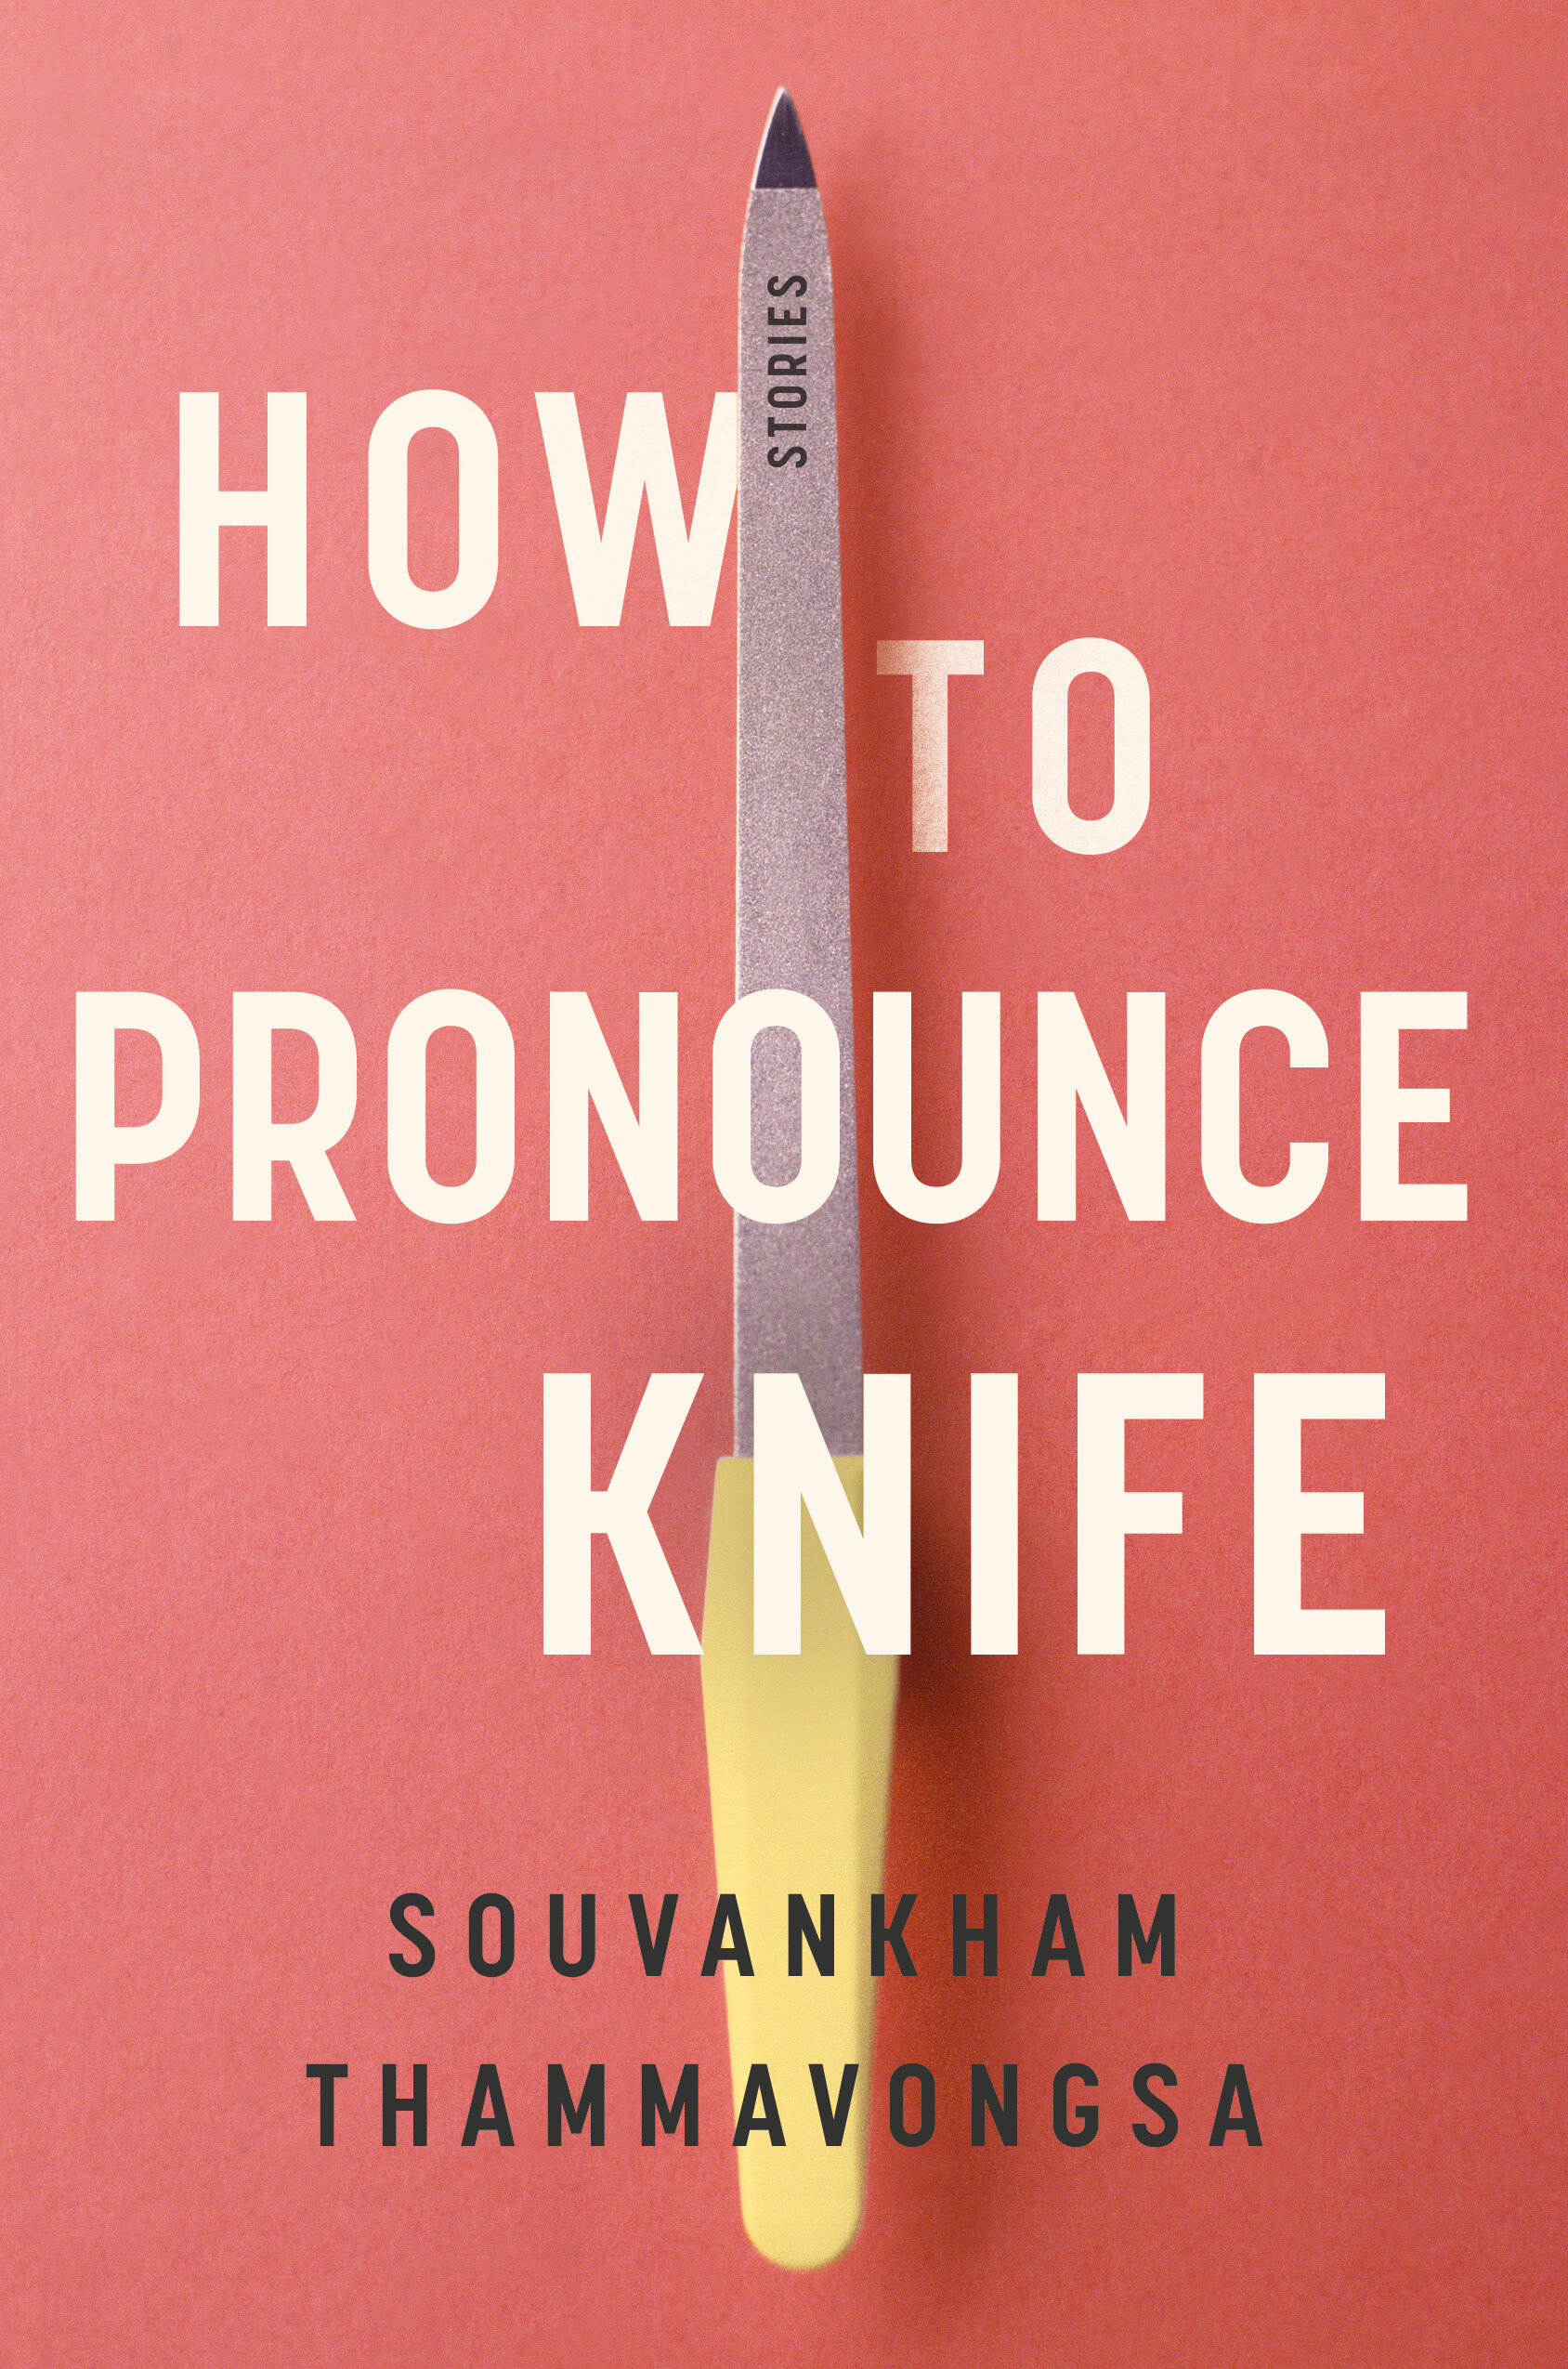 SPINE-Lauren Harms on Designing How to Pronounce Knife